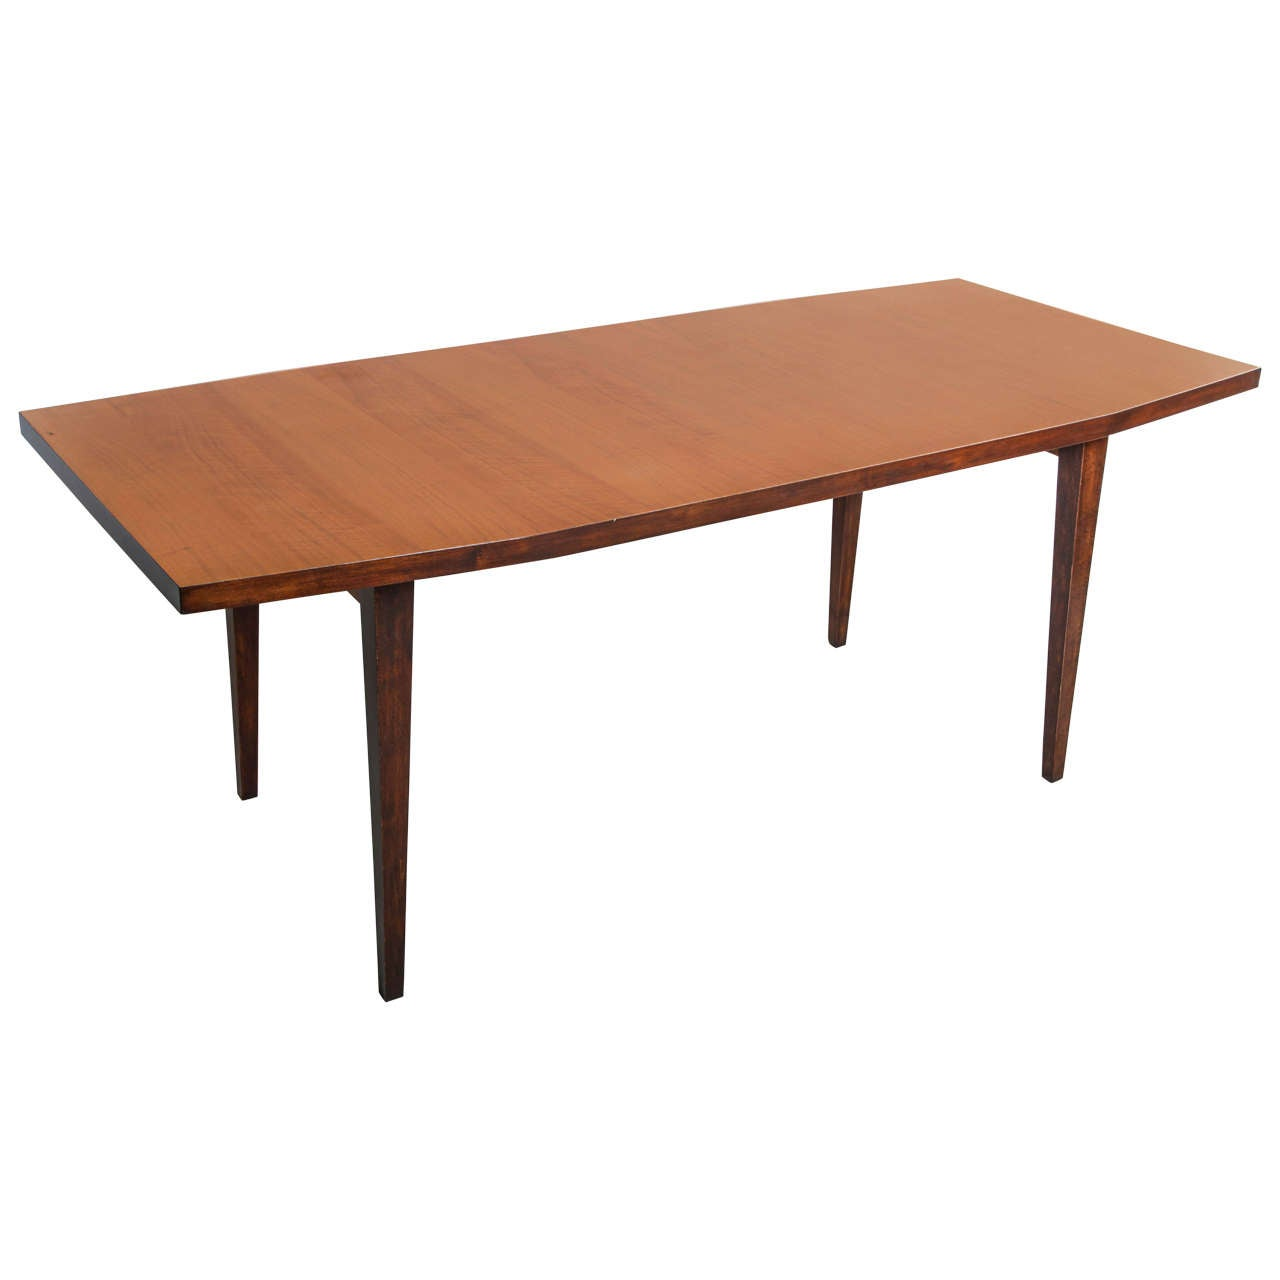 Extra Long Dining Or Conference Table By Kondor Möbel Perfektion, 1960s 1 Part 95